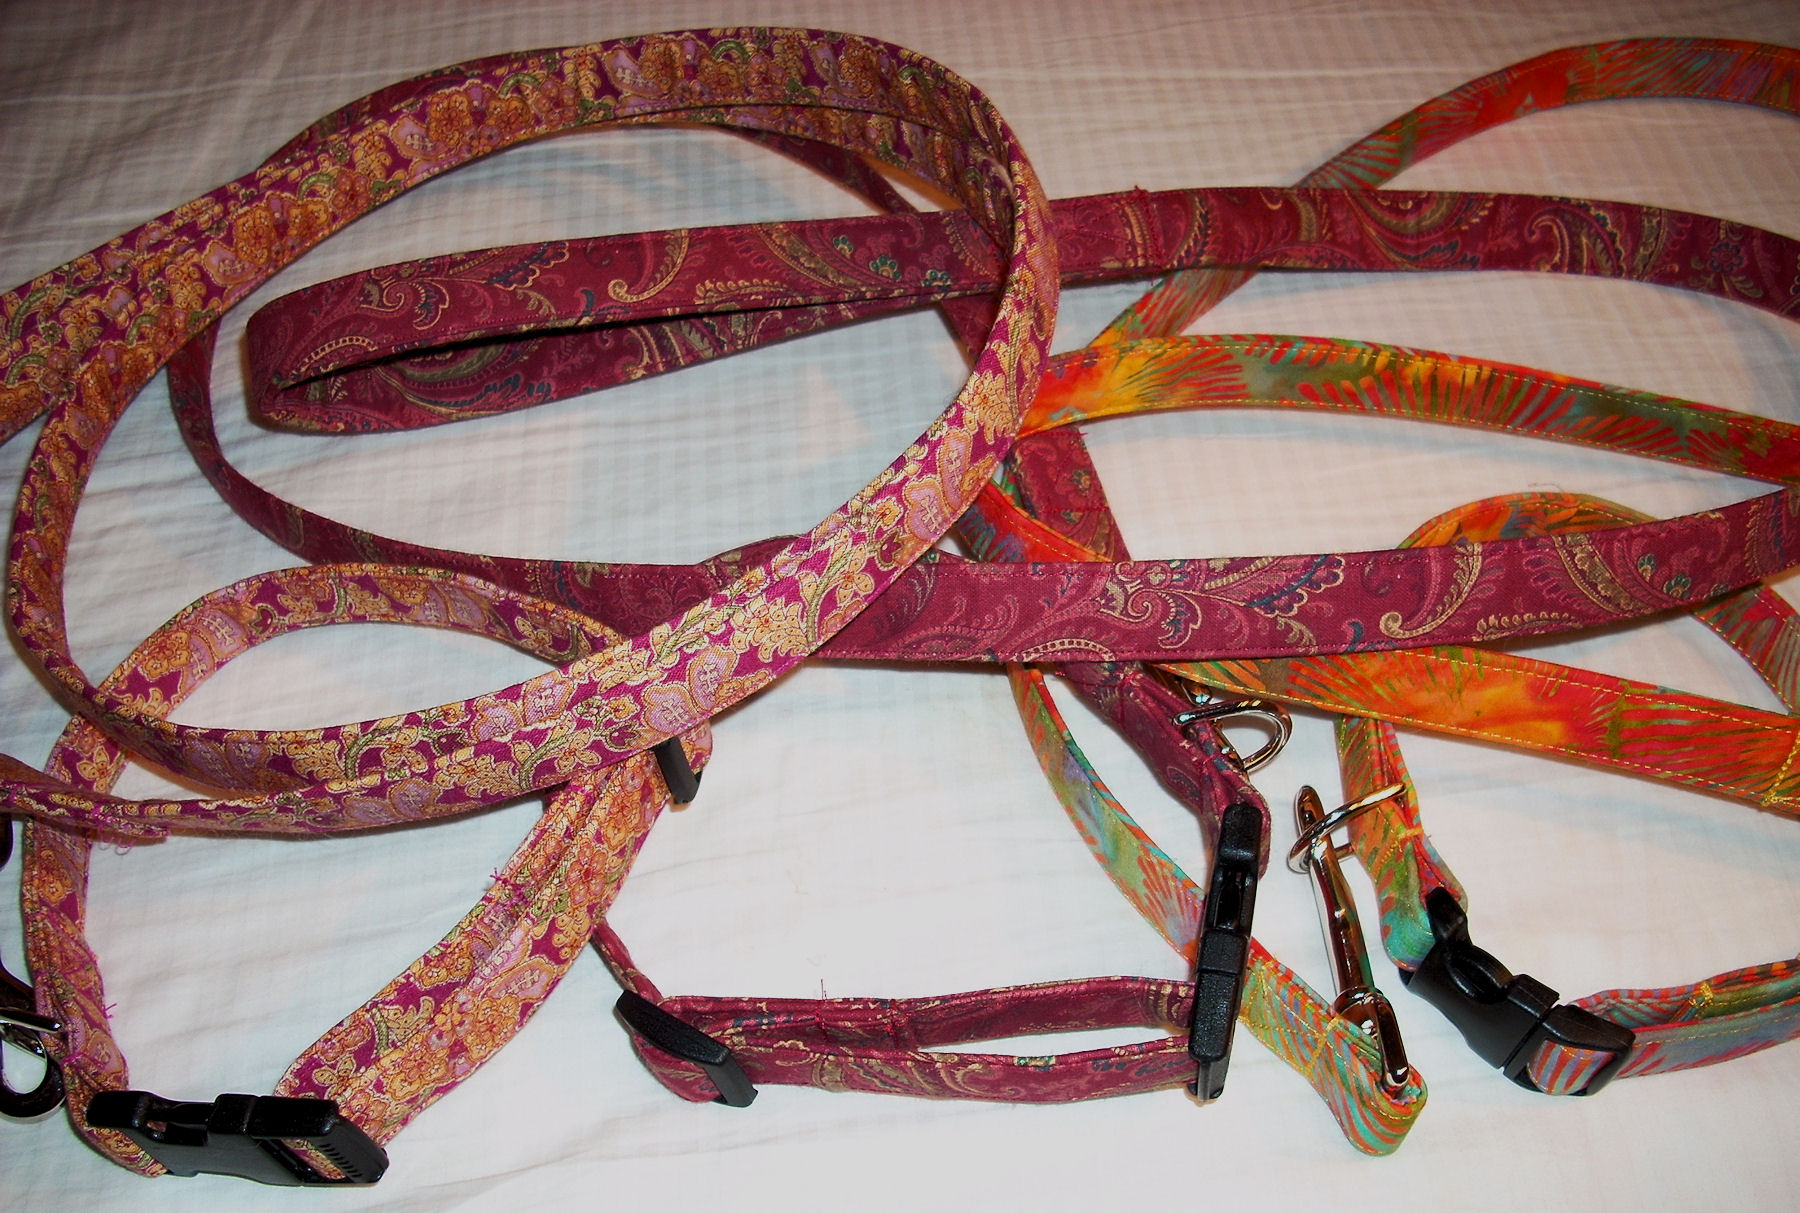 2012 Collars &amp; Leashes 3